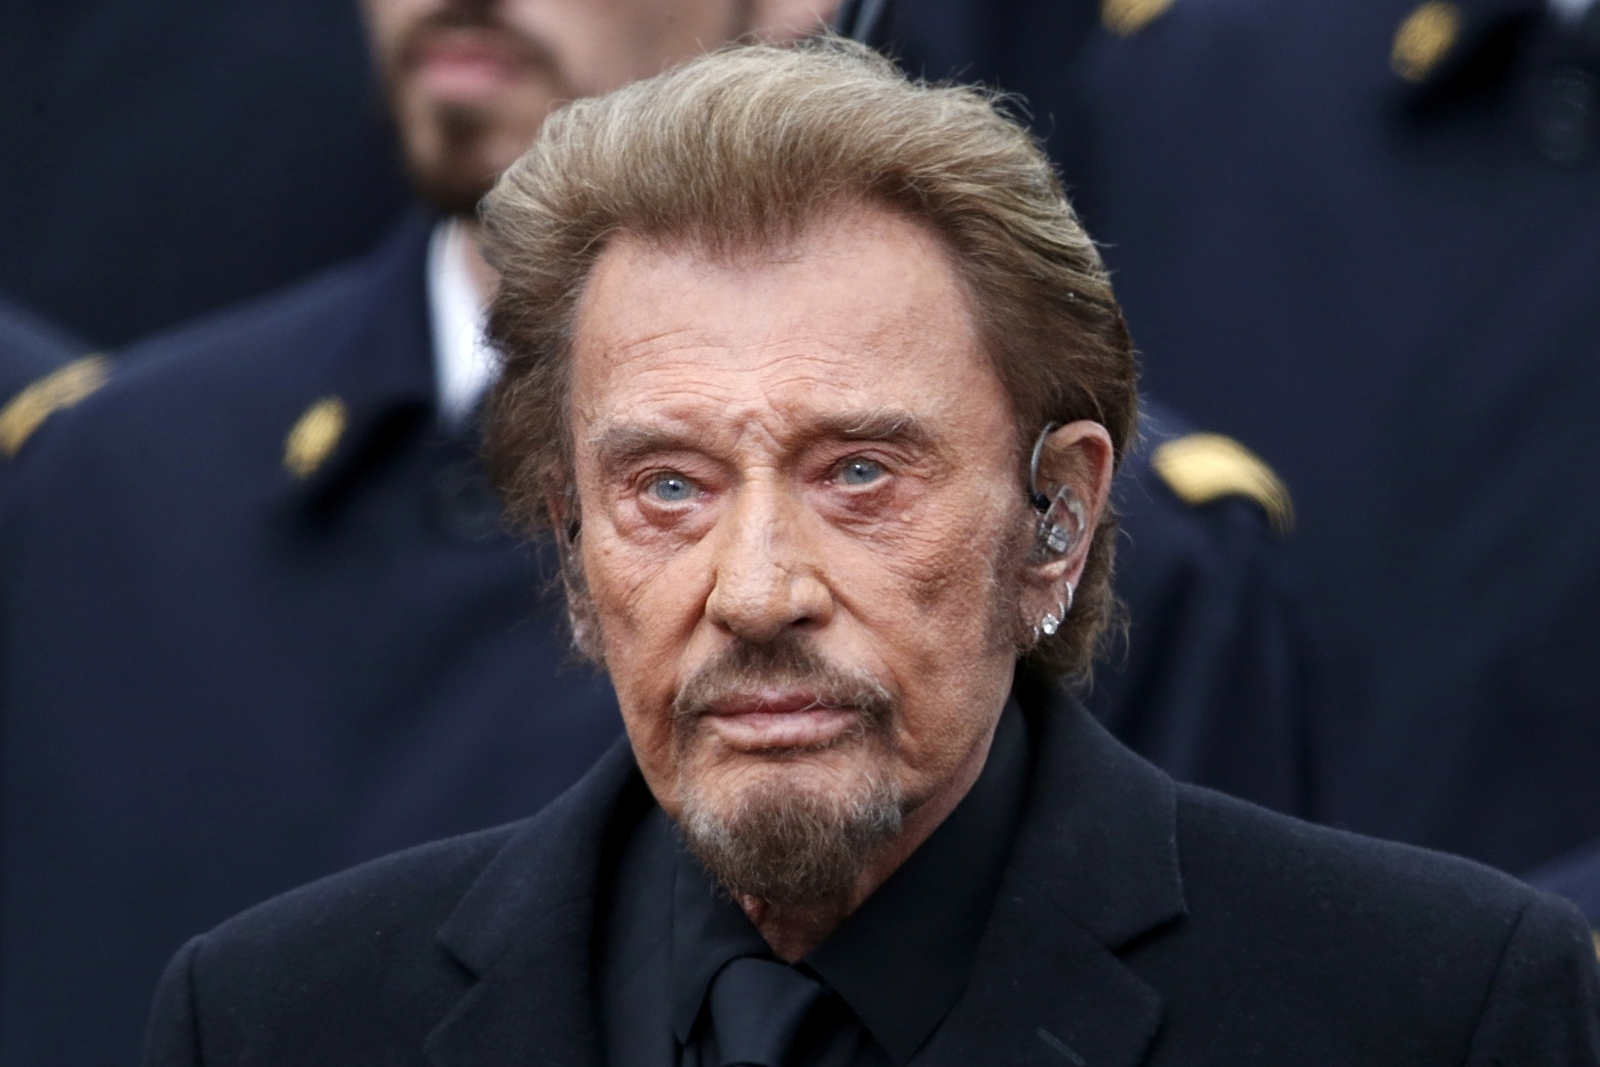 'French Elvis' Rocker Johnny Hallyday Dies at 74